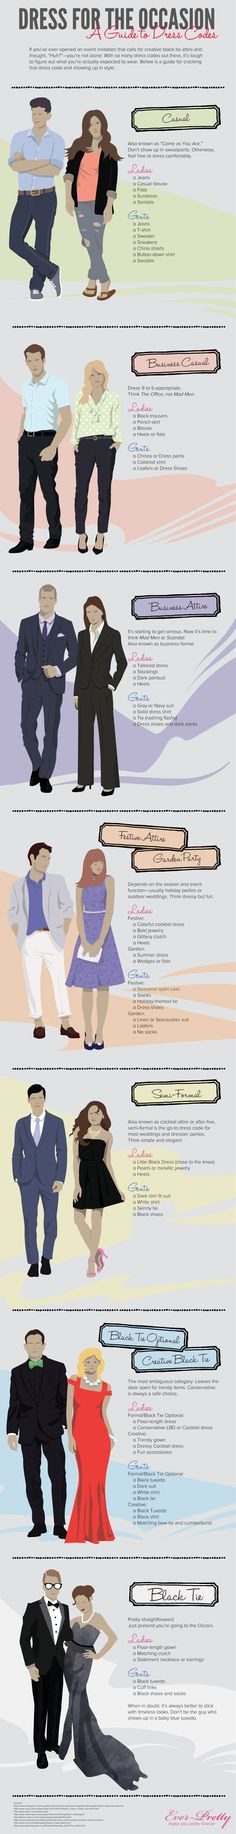 Dress for the Occasion- A Guide to Dress Codes #infographic